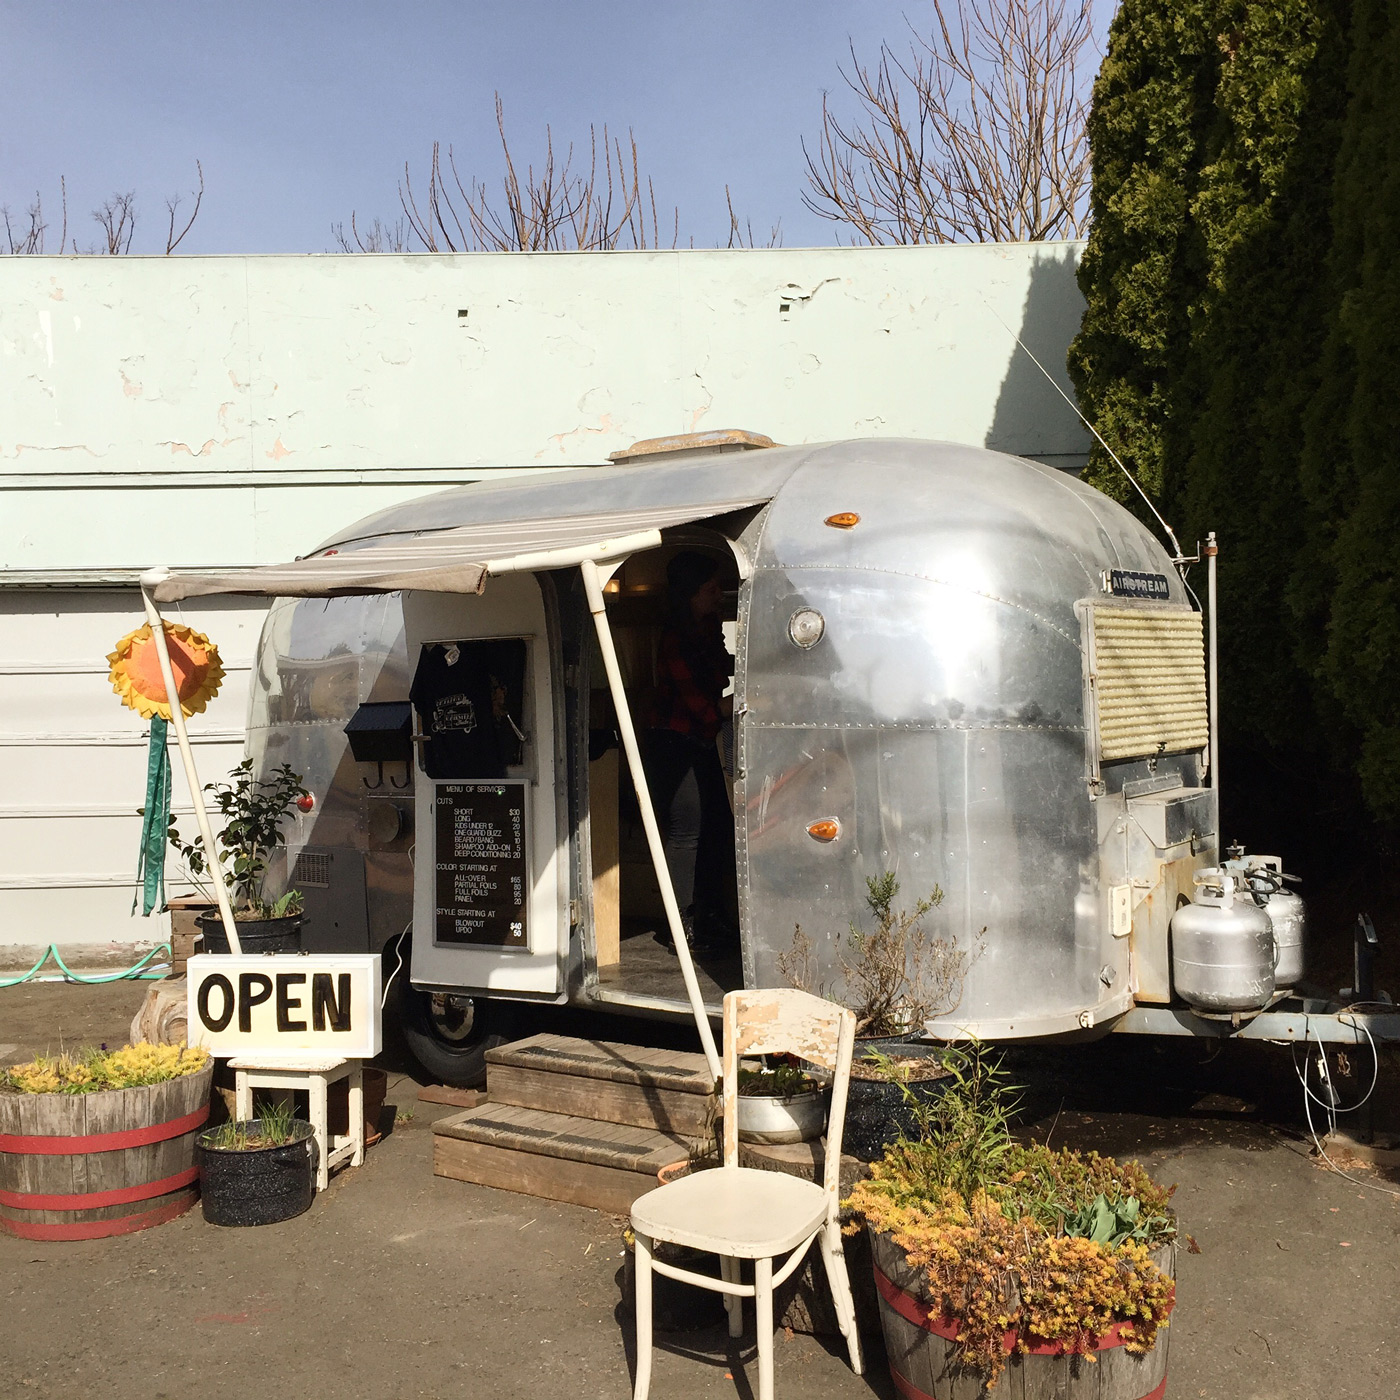 Haircuts in an airstream trailer